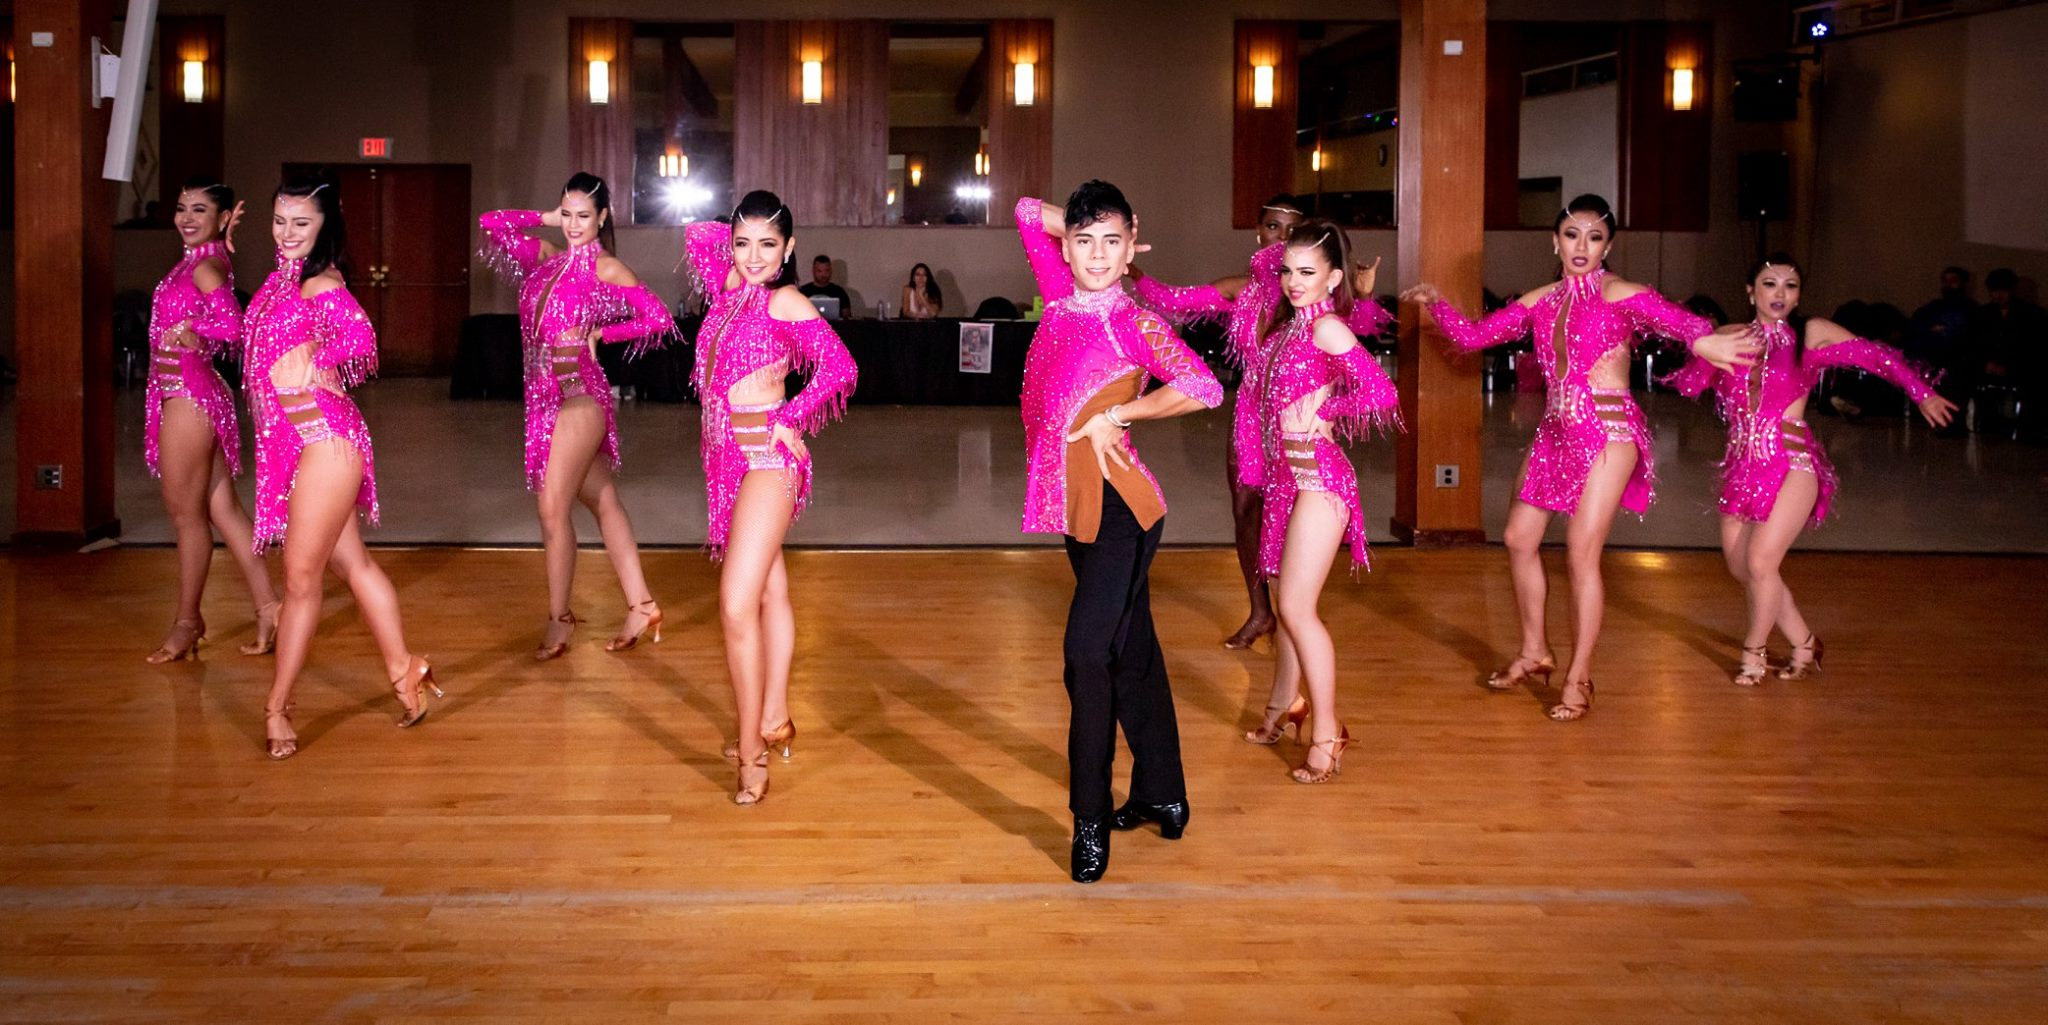 The Vancouver Salsa Showcase